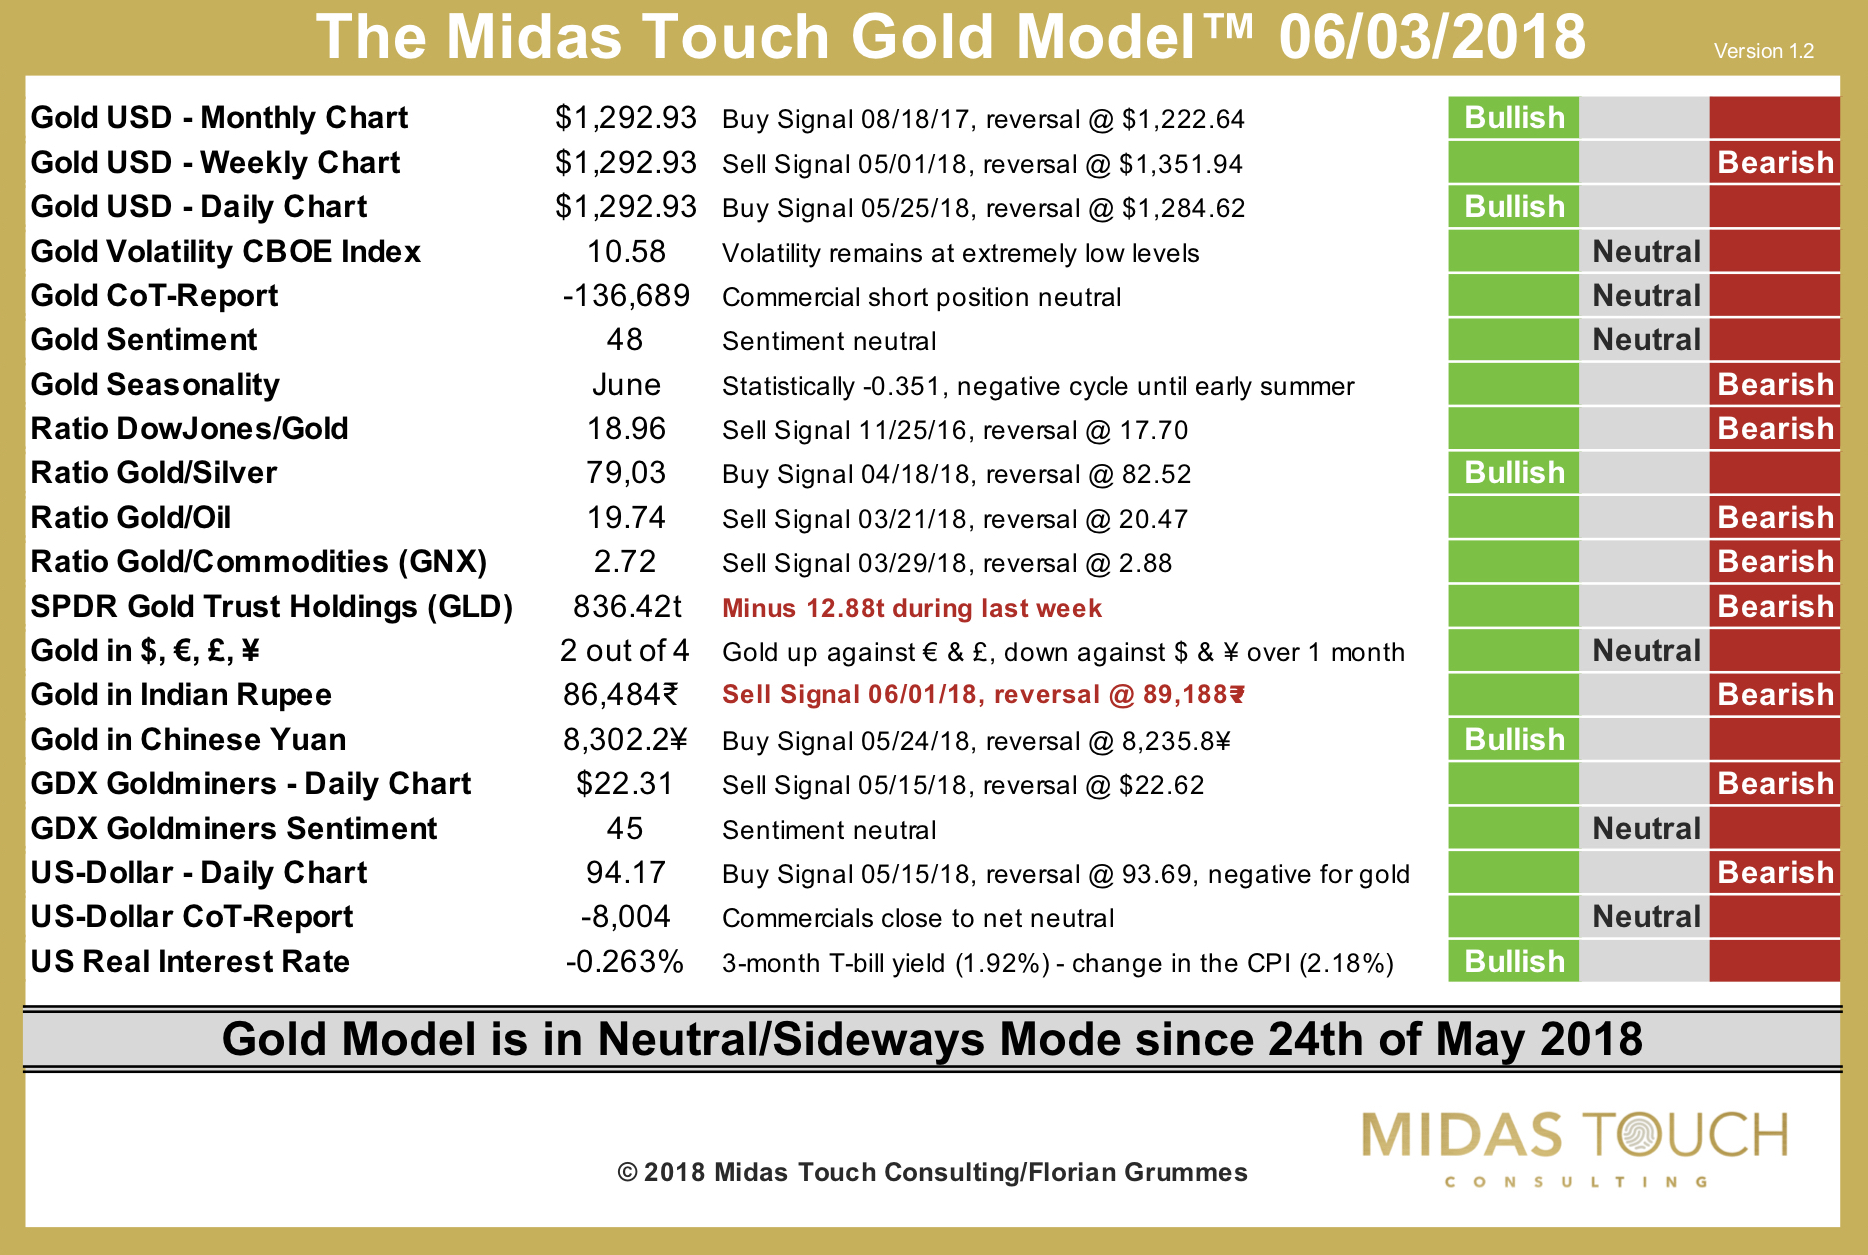 The Midas Touch Gold Model™ as of June 3rd, 2018